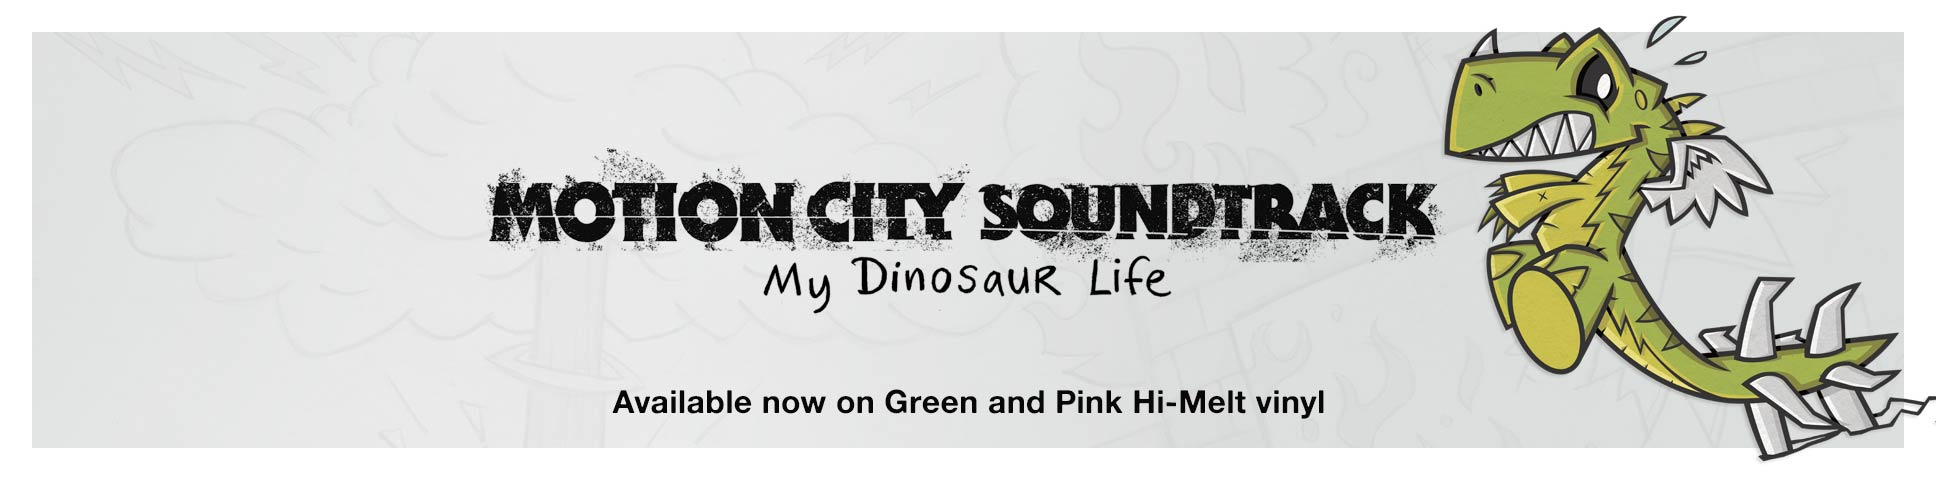 Motion City Soundtrack Exclusive Vinyl